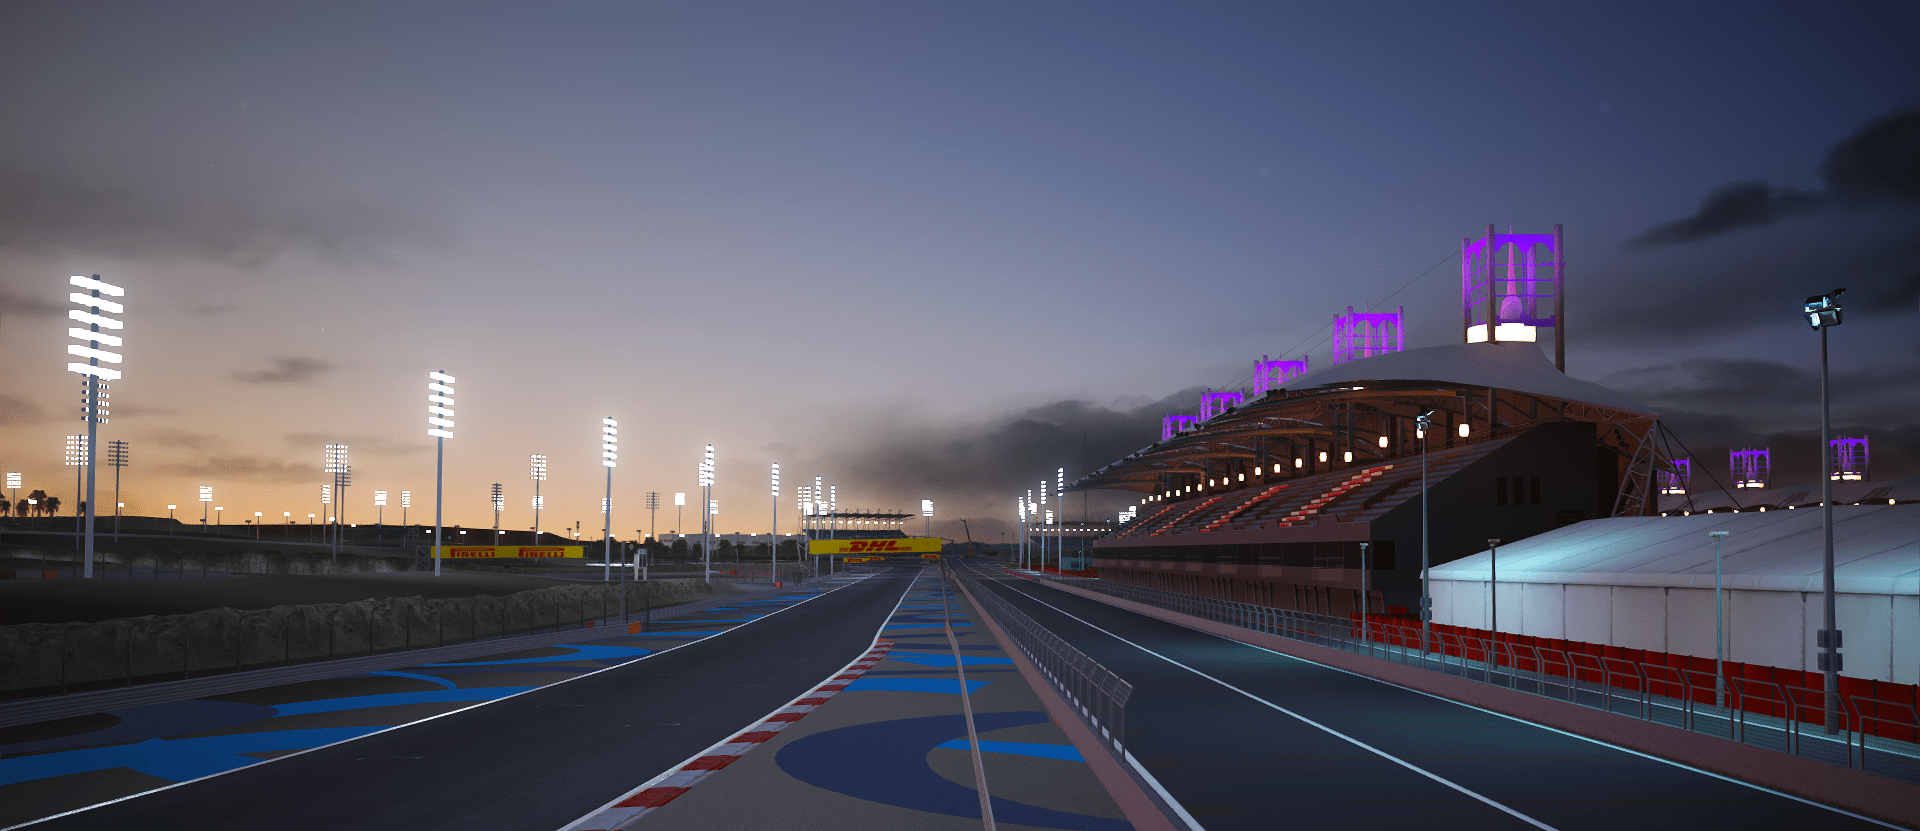 Assetto Corsa Custom Shaders Patch Track Lights